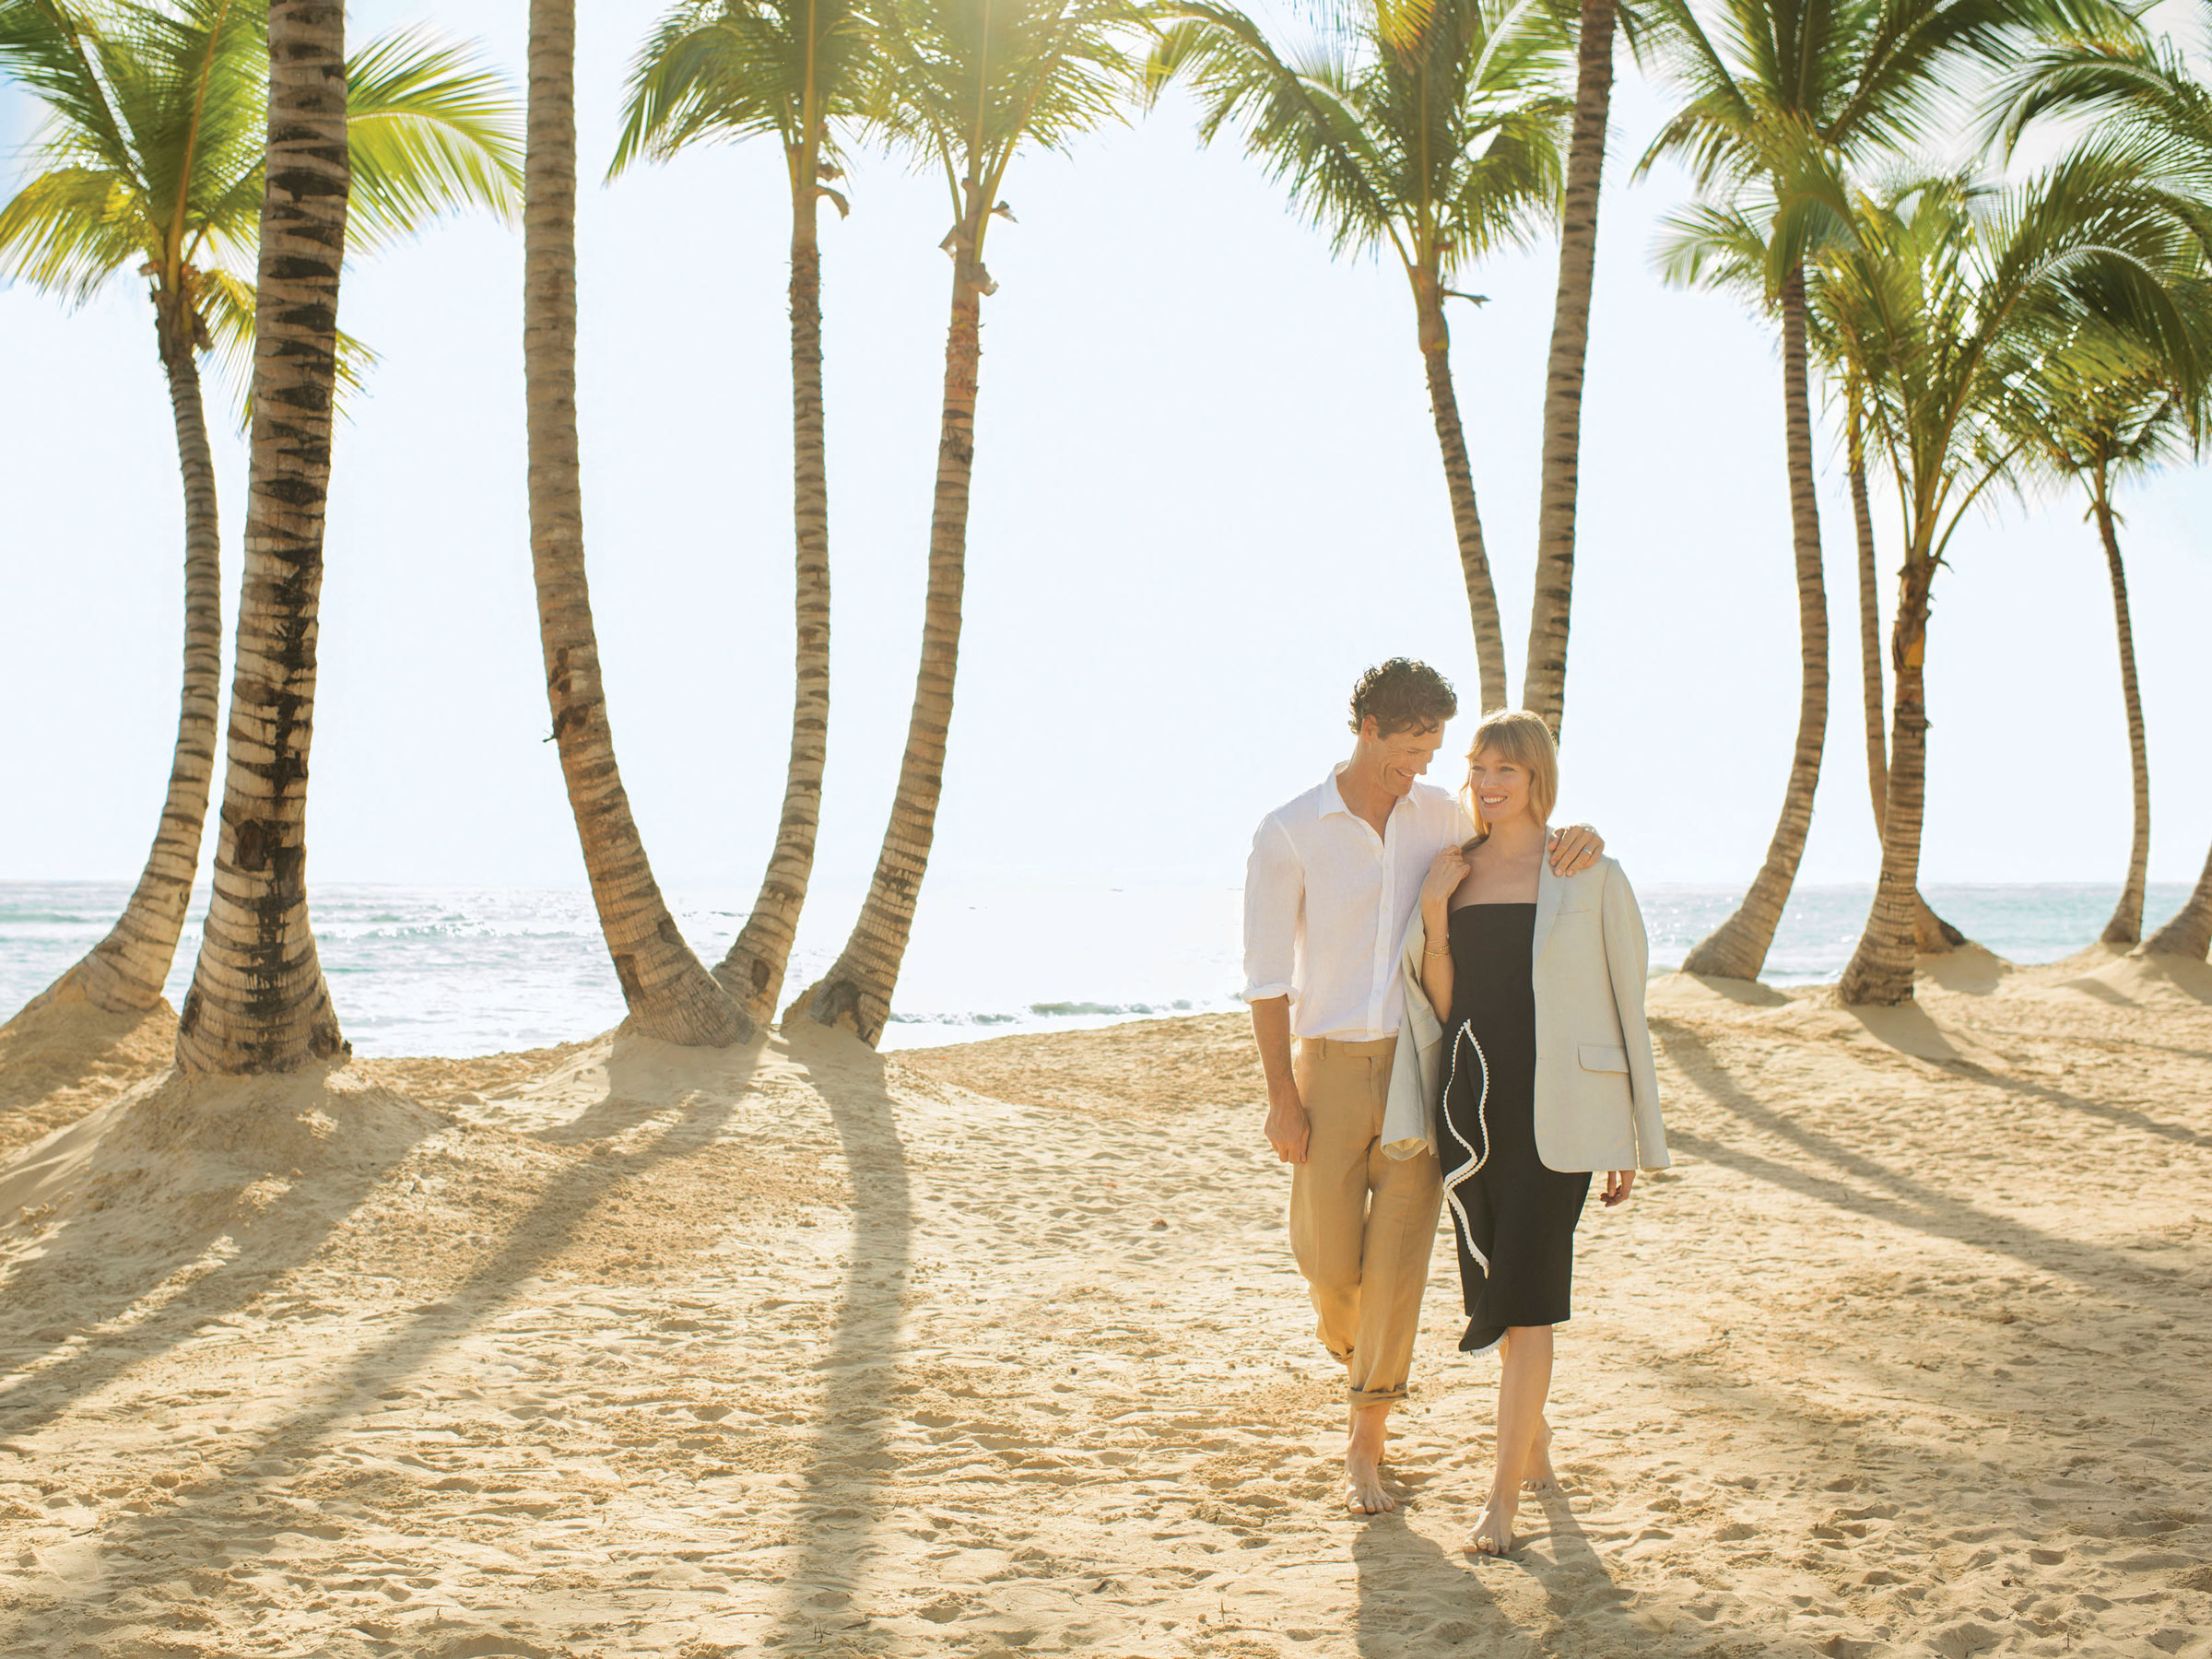 Get Romantic with a Dominican Republic Honeymoon at Excellence El Carmen Beach Resort